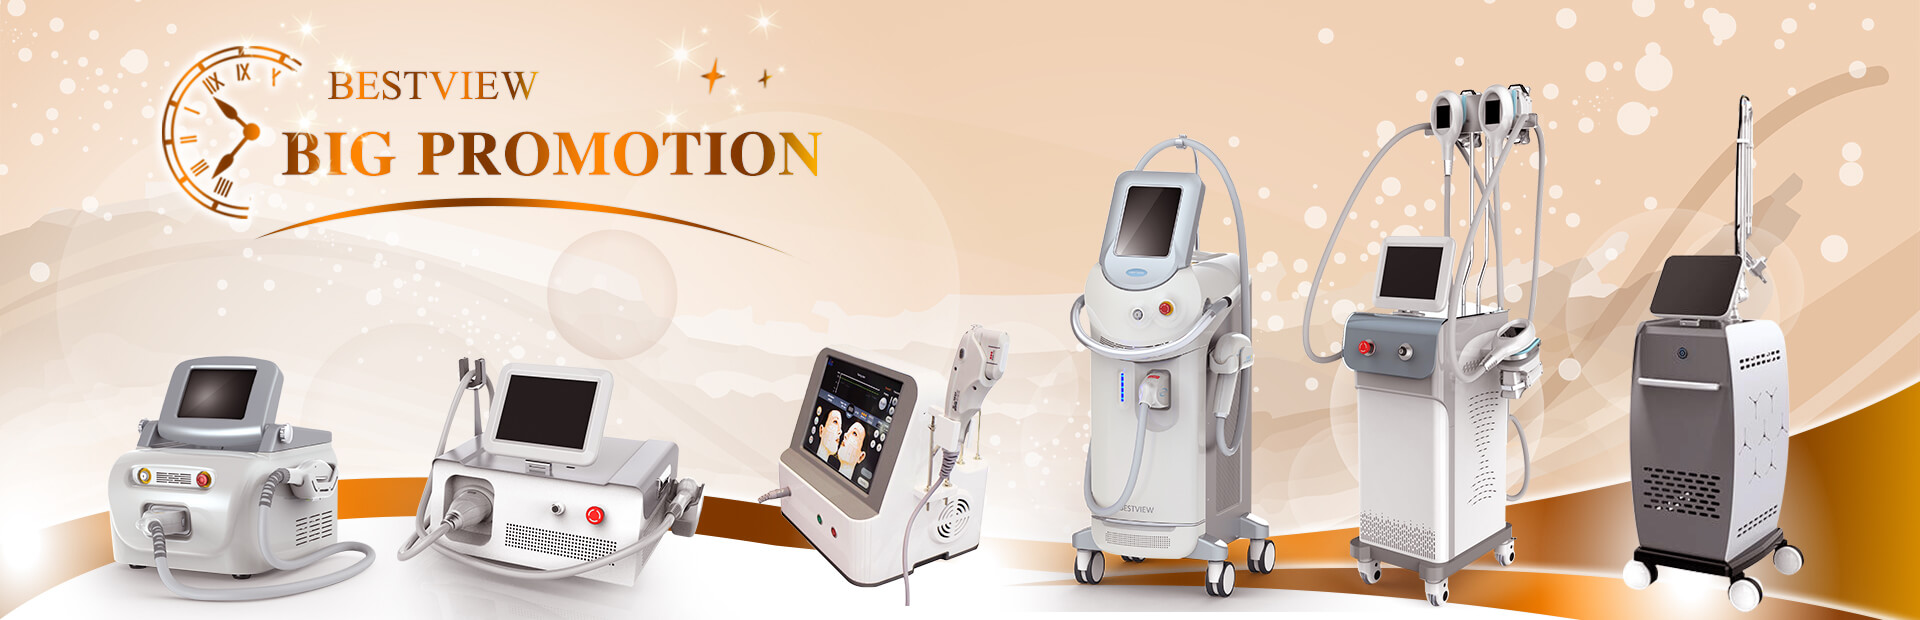 hair removal system, hair removal machines